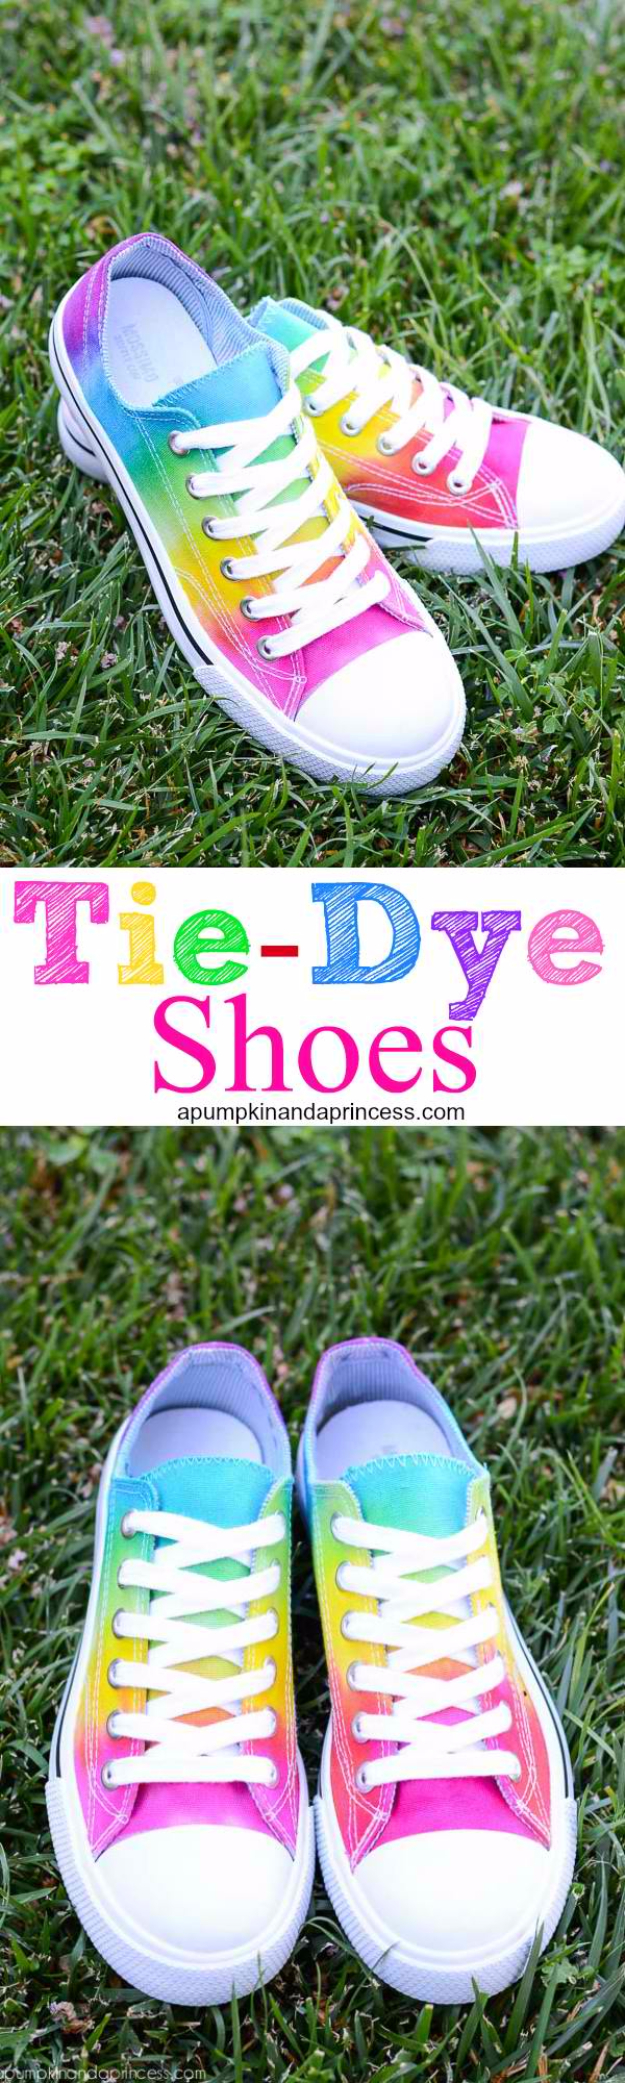 DIY Shoe Makeovers - Rainbow Tie Dye Shoes - Cool Ways to Update, Decorate, Paint, Bedazle and Add Sparkle to Your Flats, Pumps, Tennis Shoes, Boots and Boring Shoes - Cool Crafts and DIY Shoe Ideas for Teens and Adults